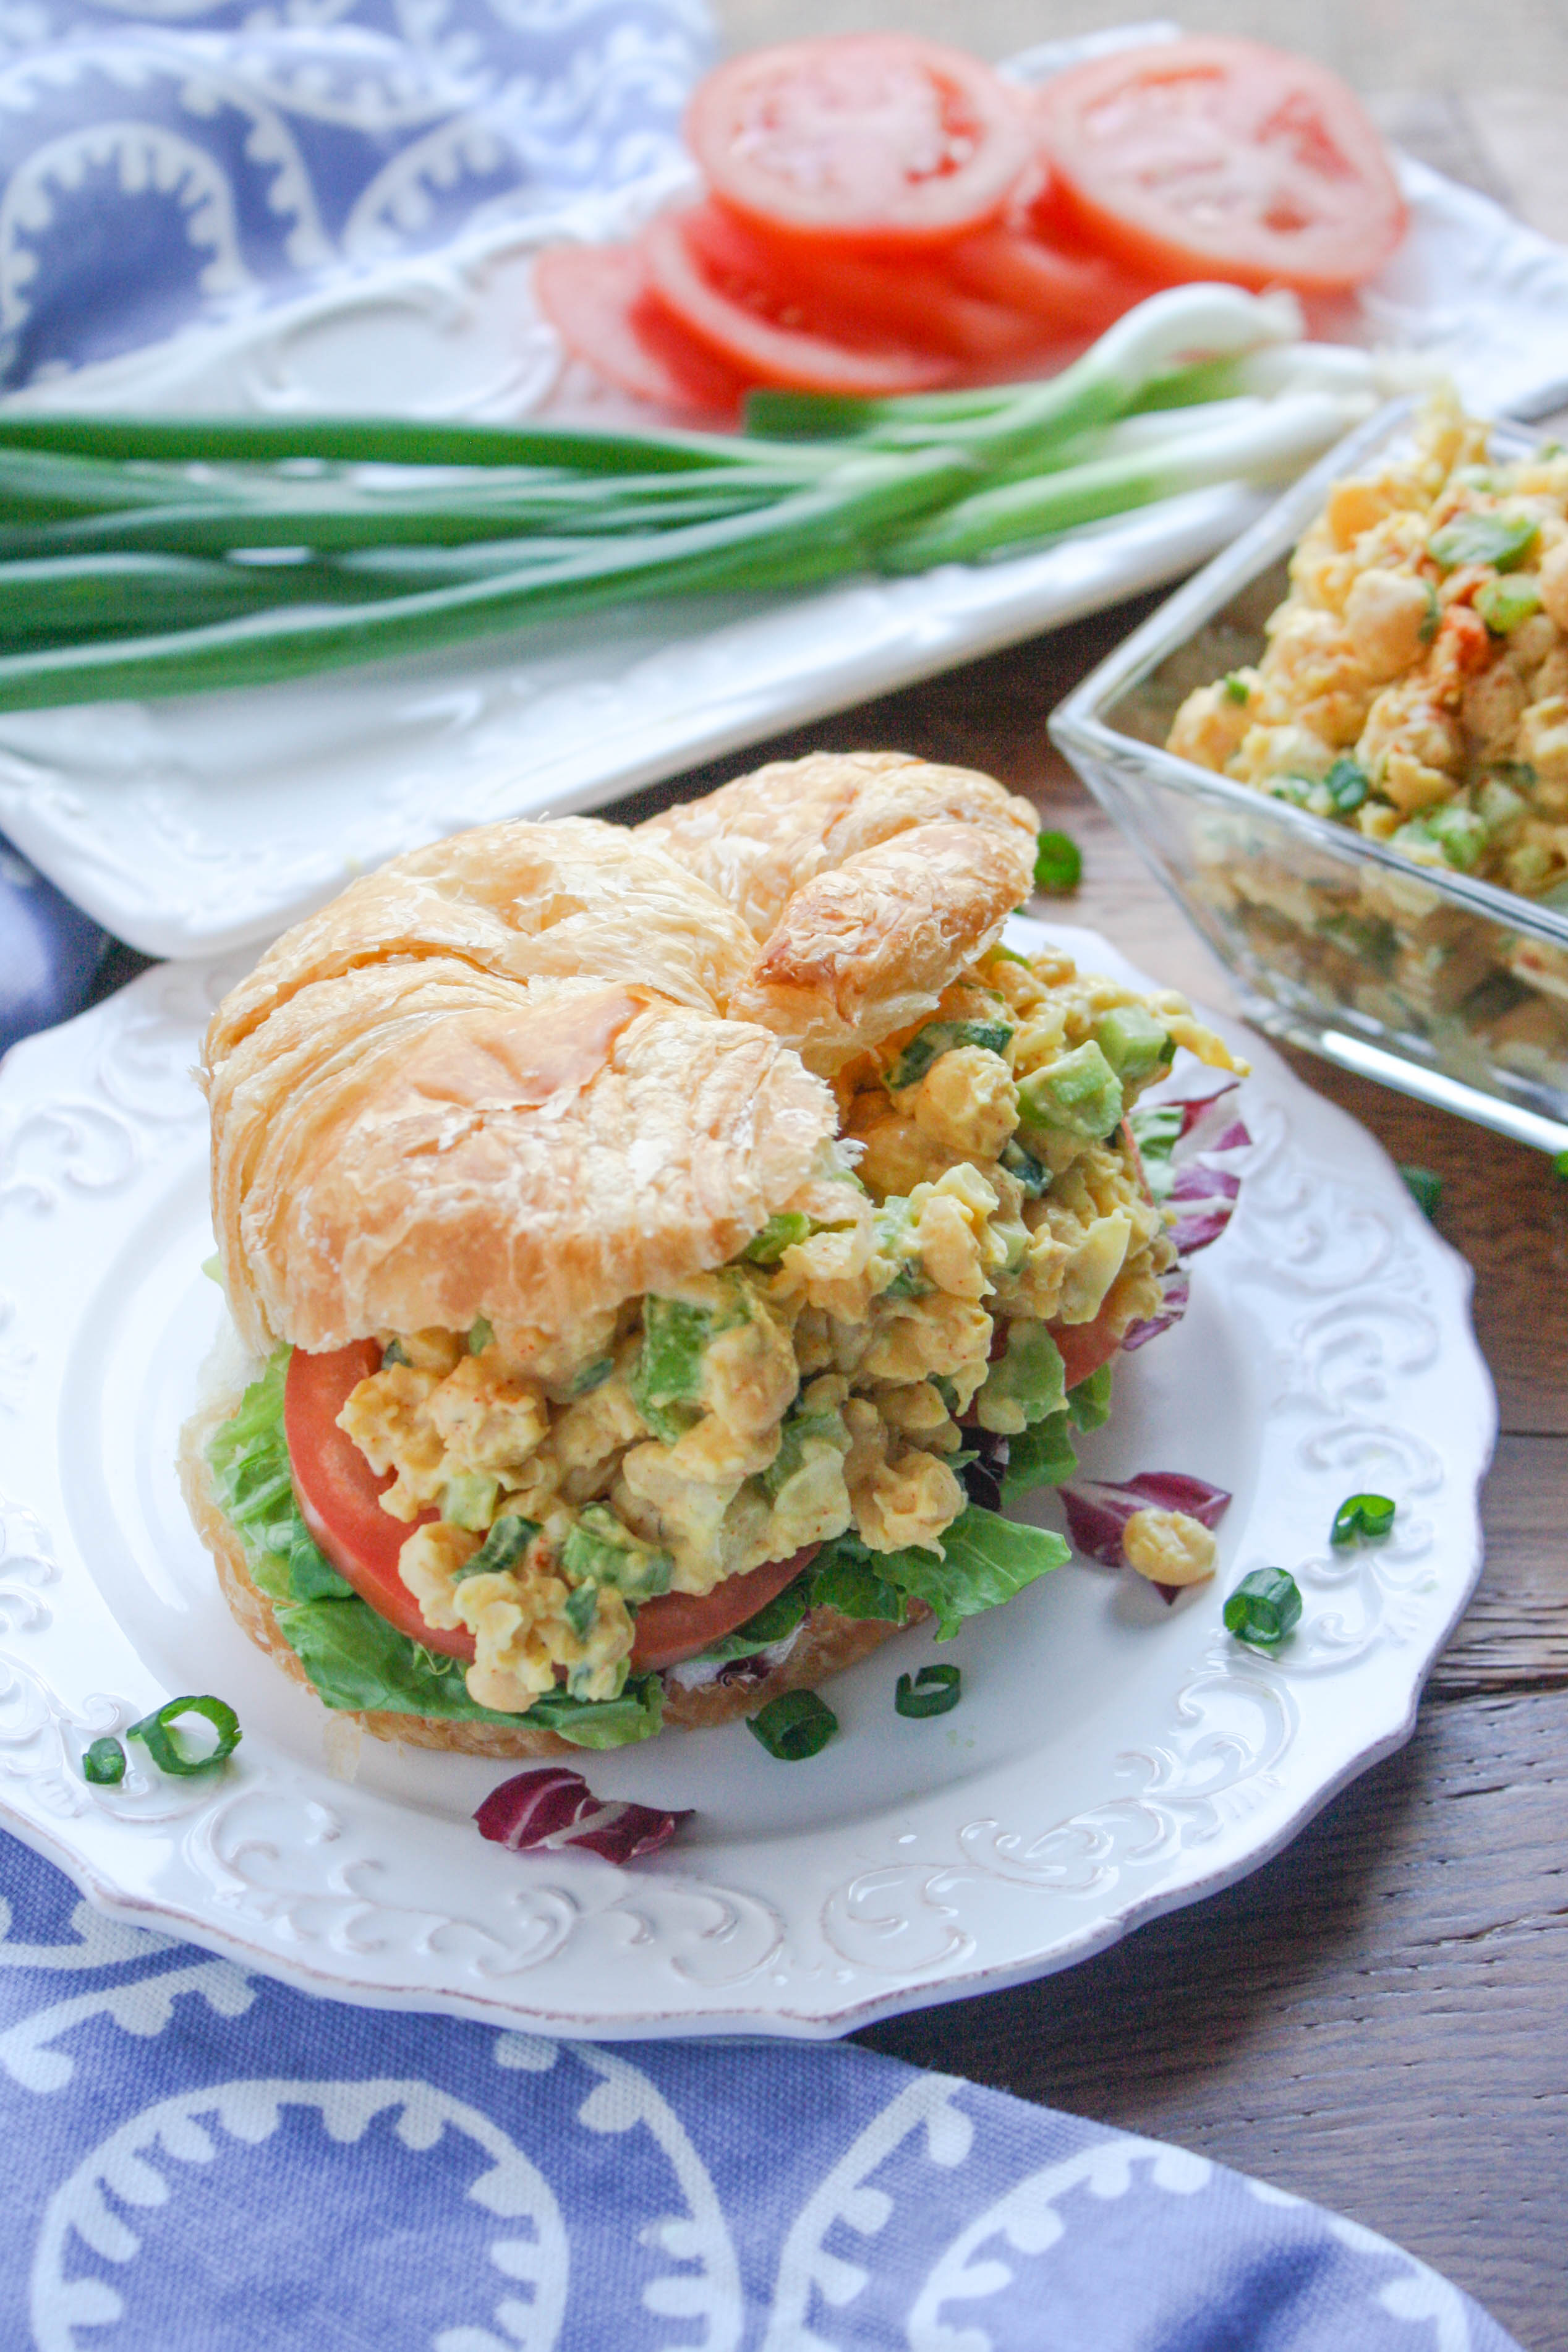 Chickpea Salad Sandwiches are a tasty, meatless option for parties or lunch. These vegetarian sandwiches are so tasty!